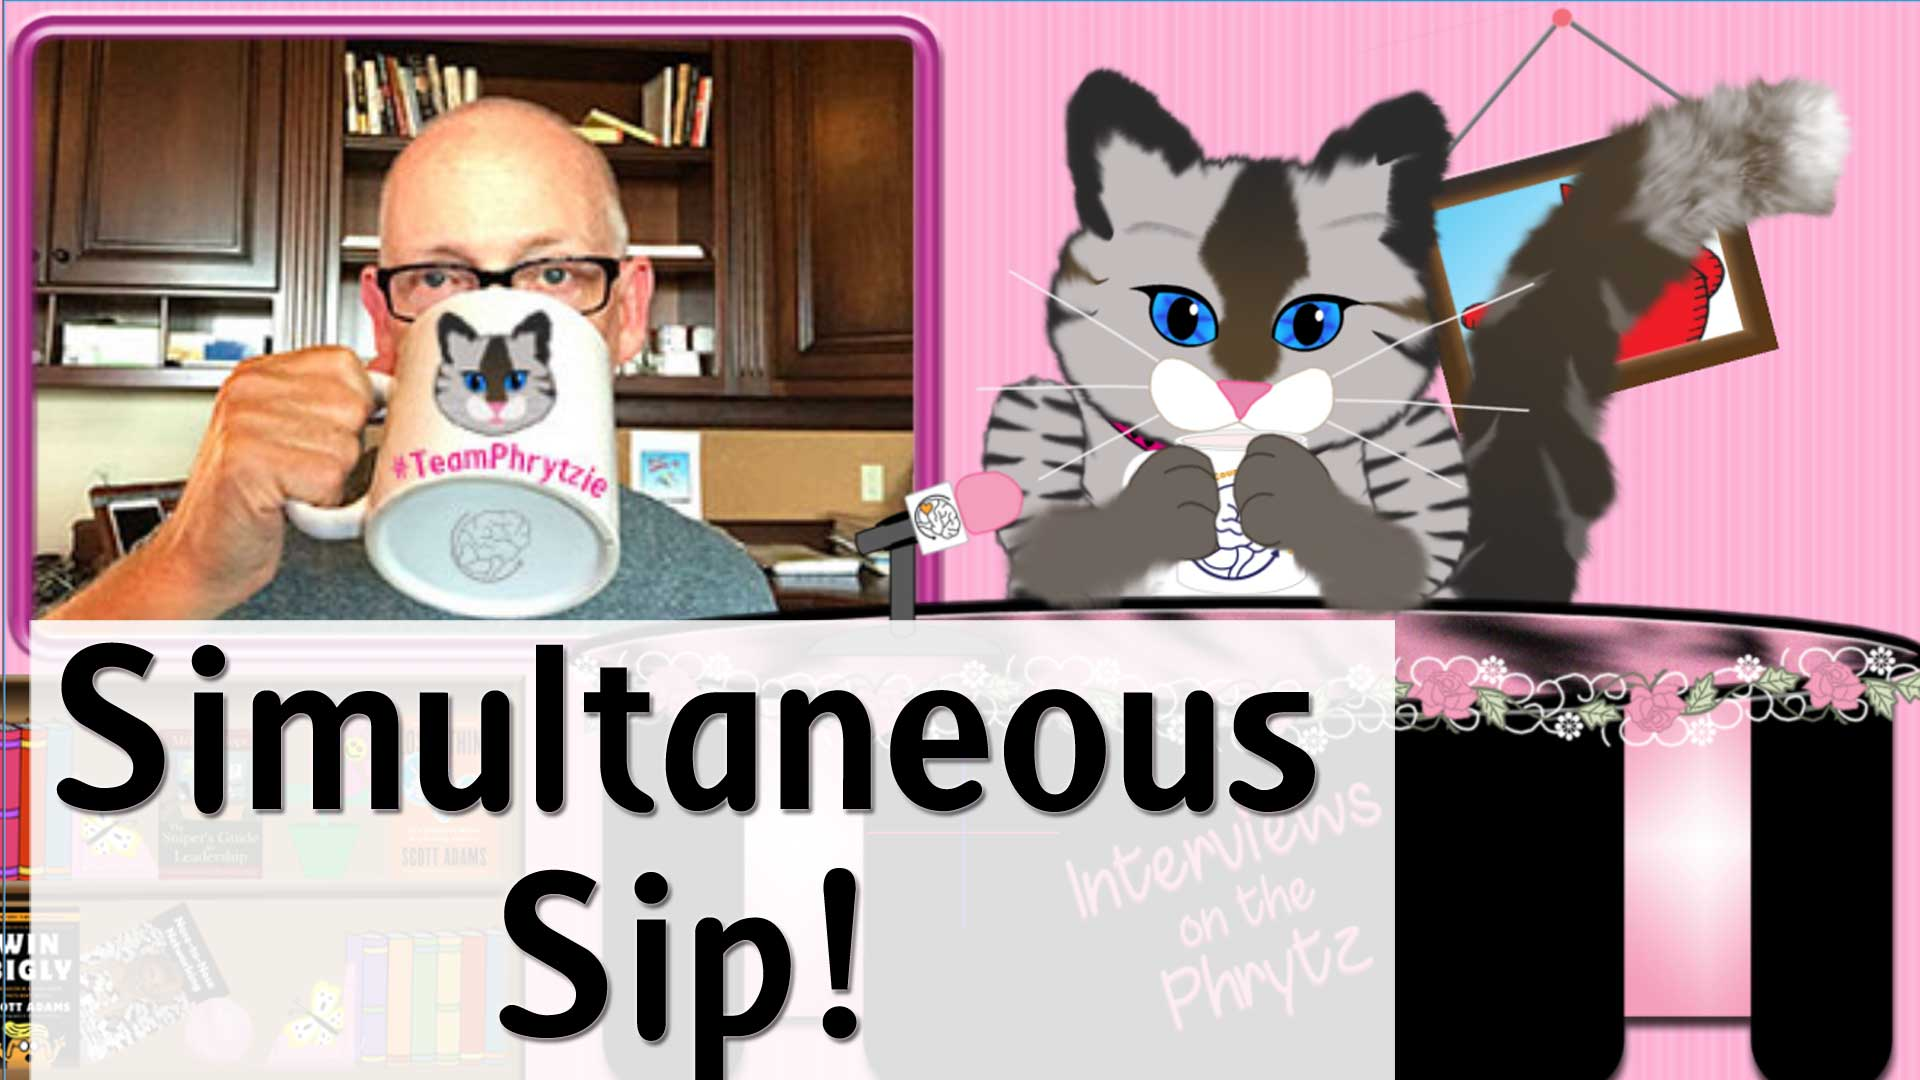 Phrytzie celebrates her favorite cartoonist with a simultaneous sip